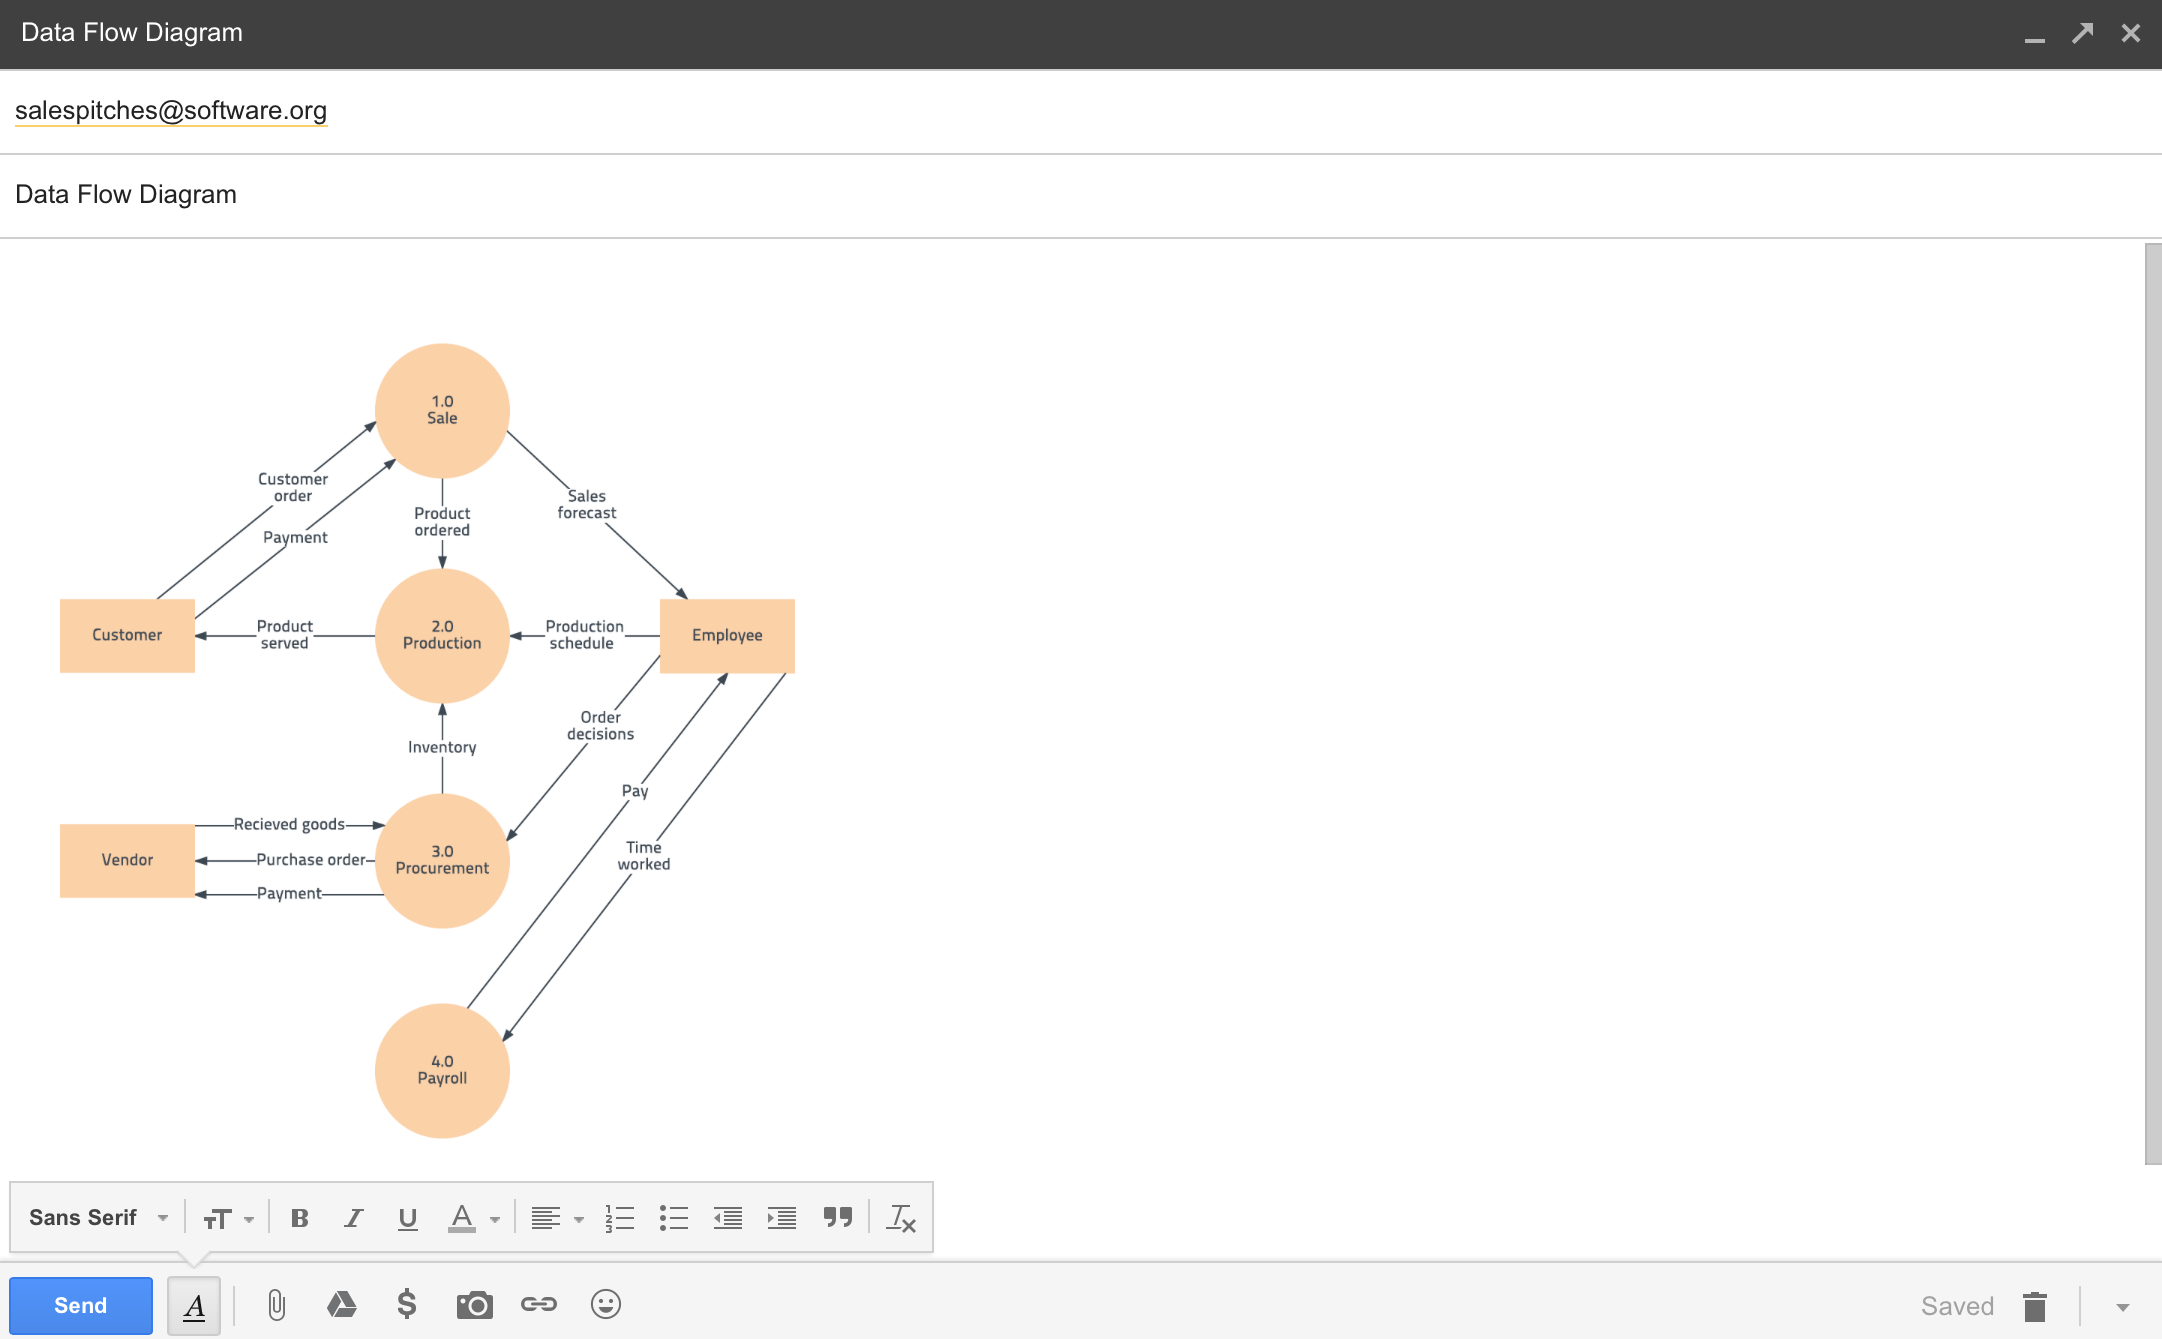 Data flow diagram embedded in email